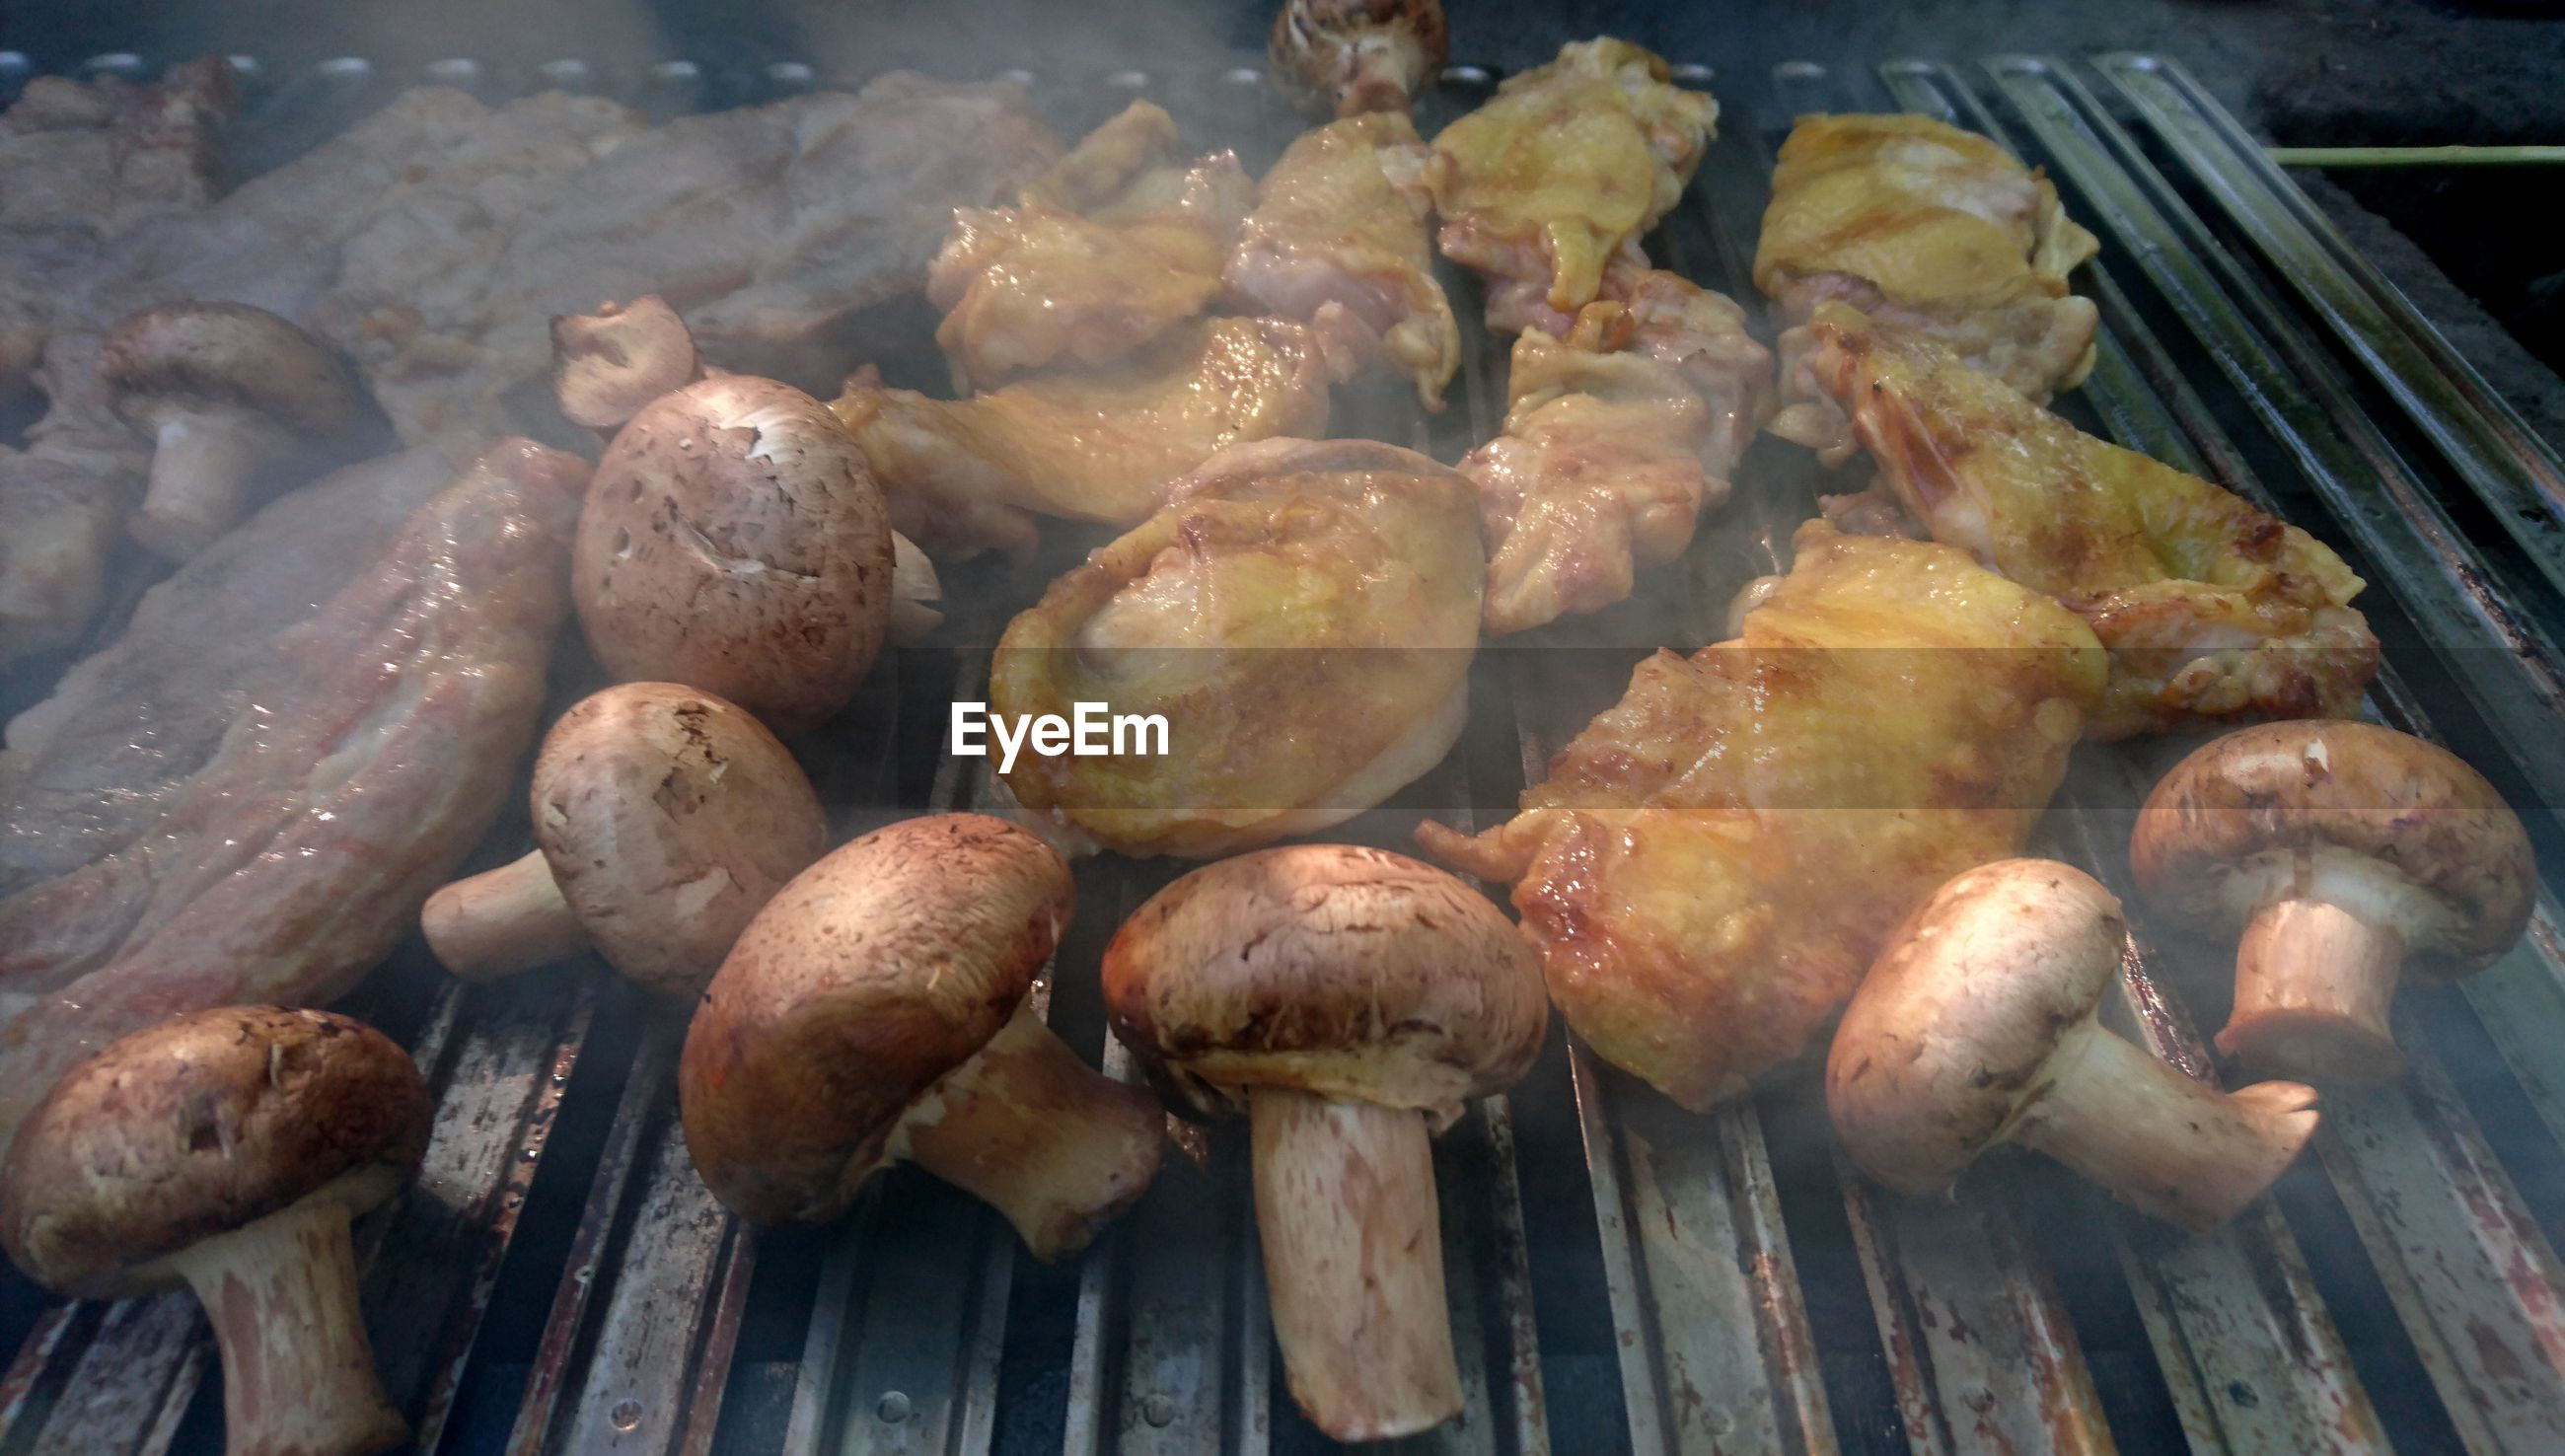 CLOSE-UP OF ROASTED MEAT ON BARBECUE